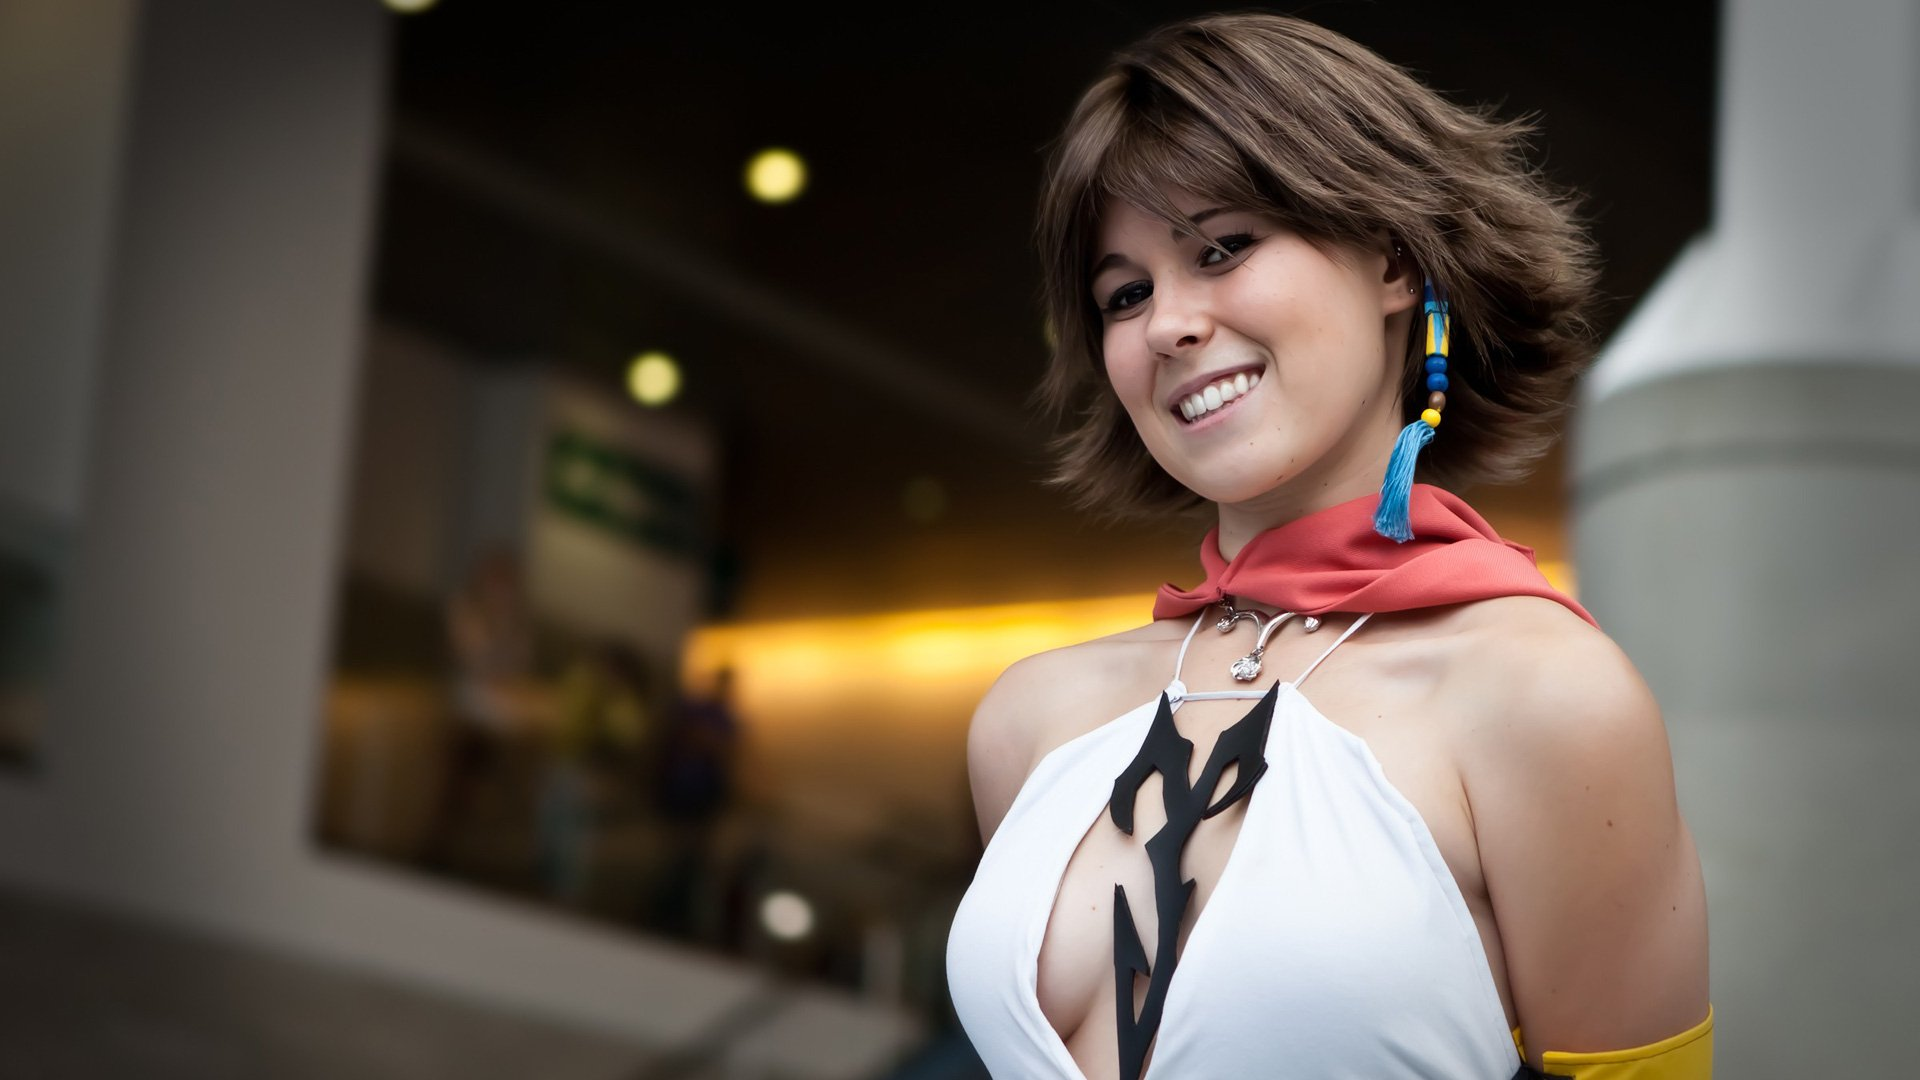 cosplay 1920x1080 image - photo #5